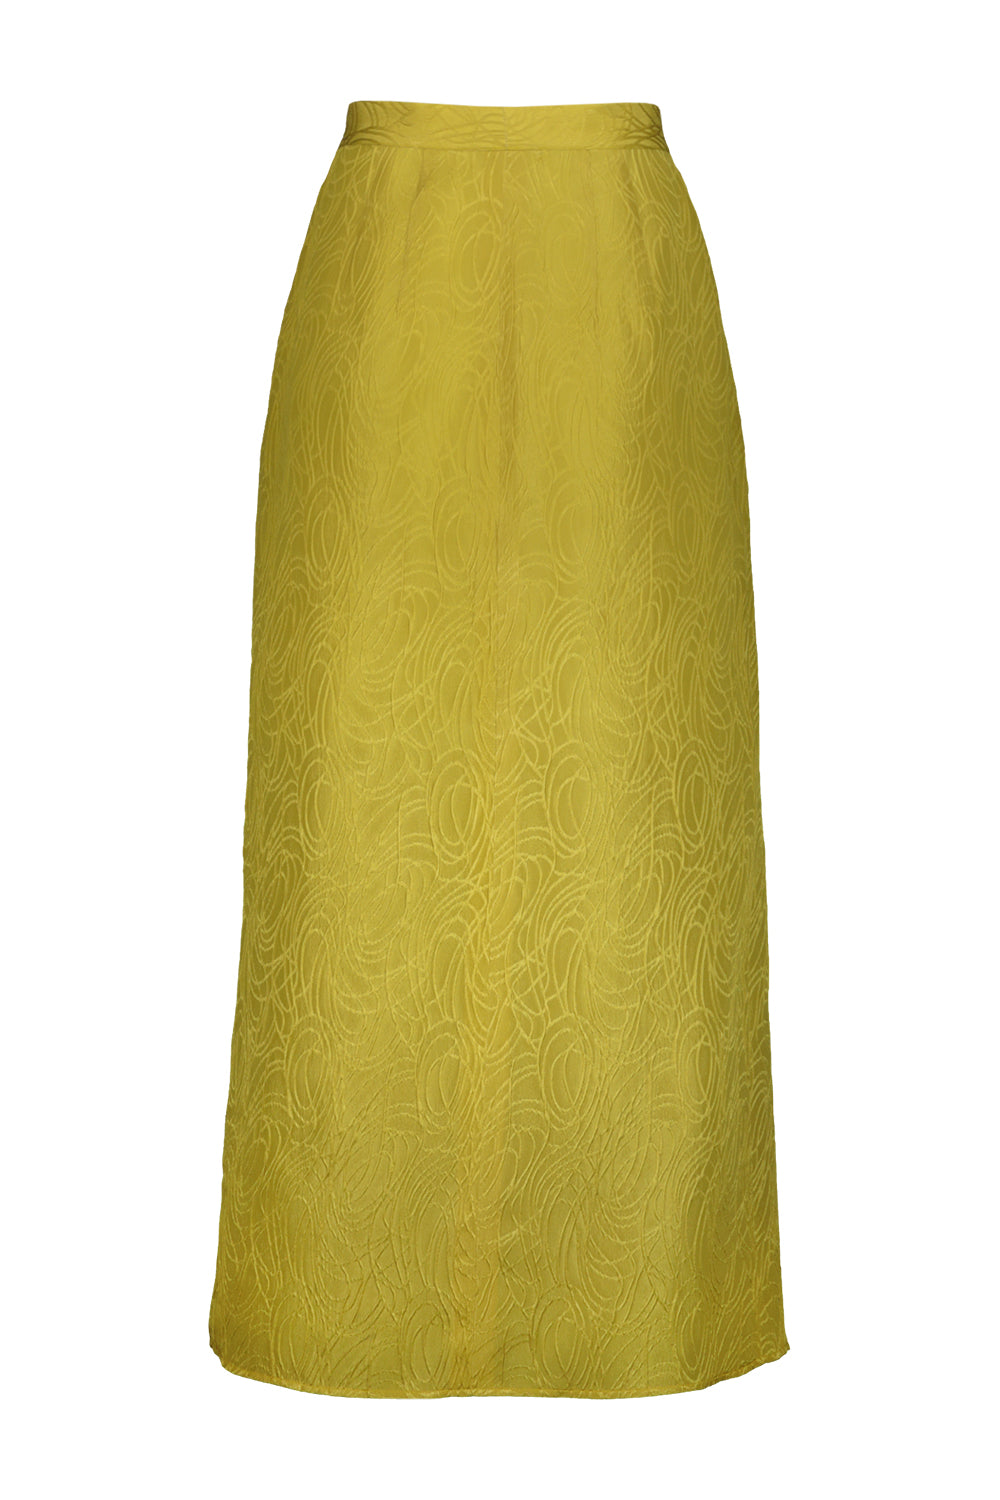 MARGOT - MADELEINE MIDI SKIRT